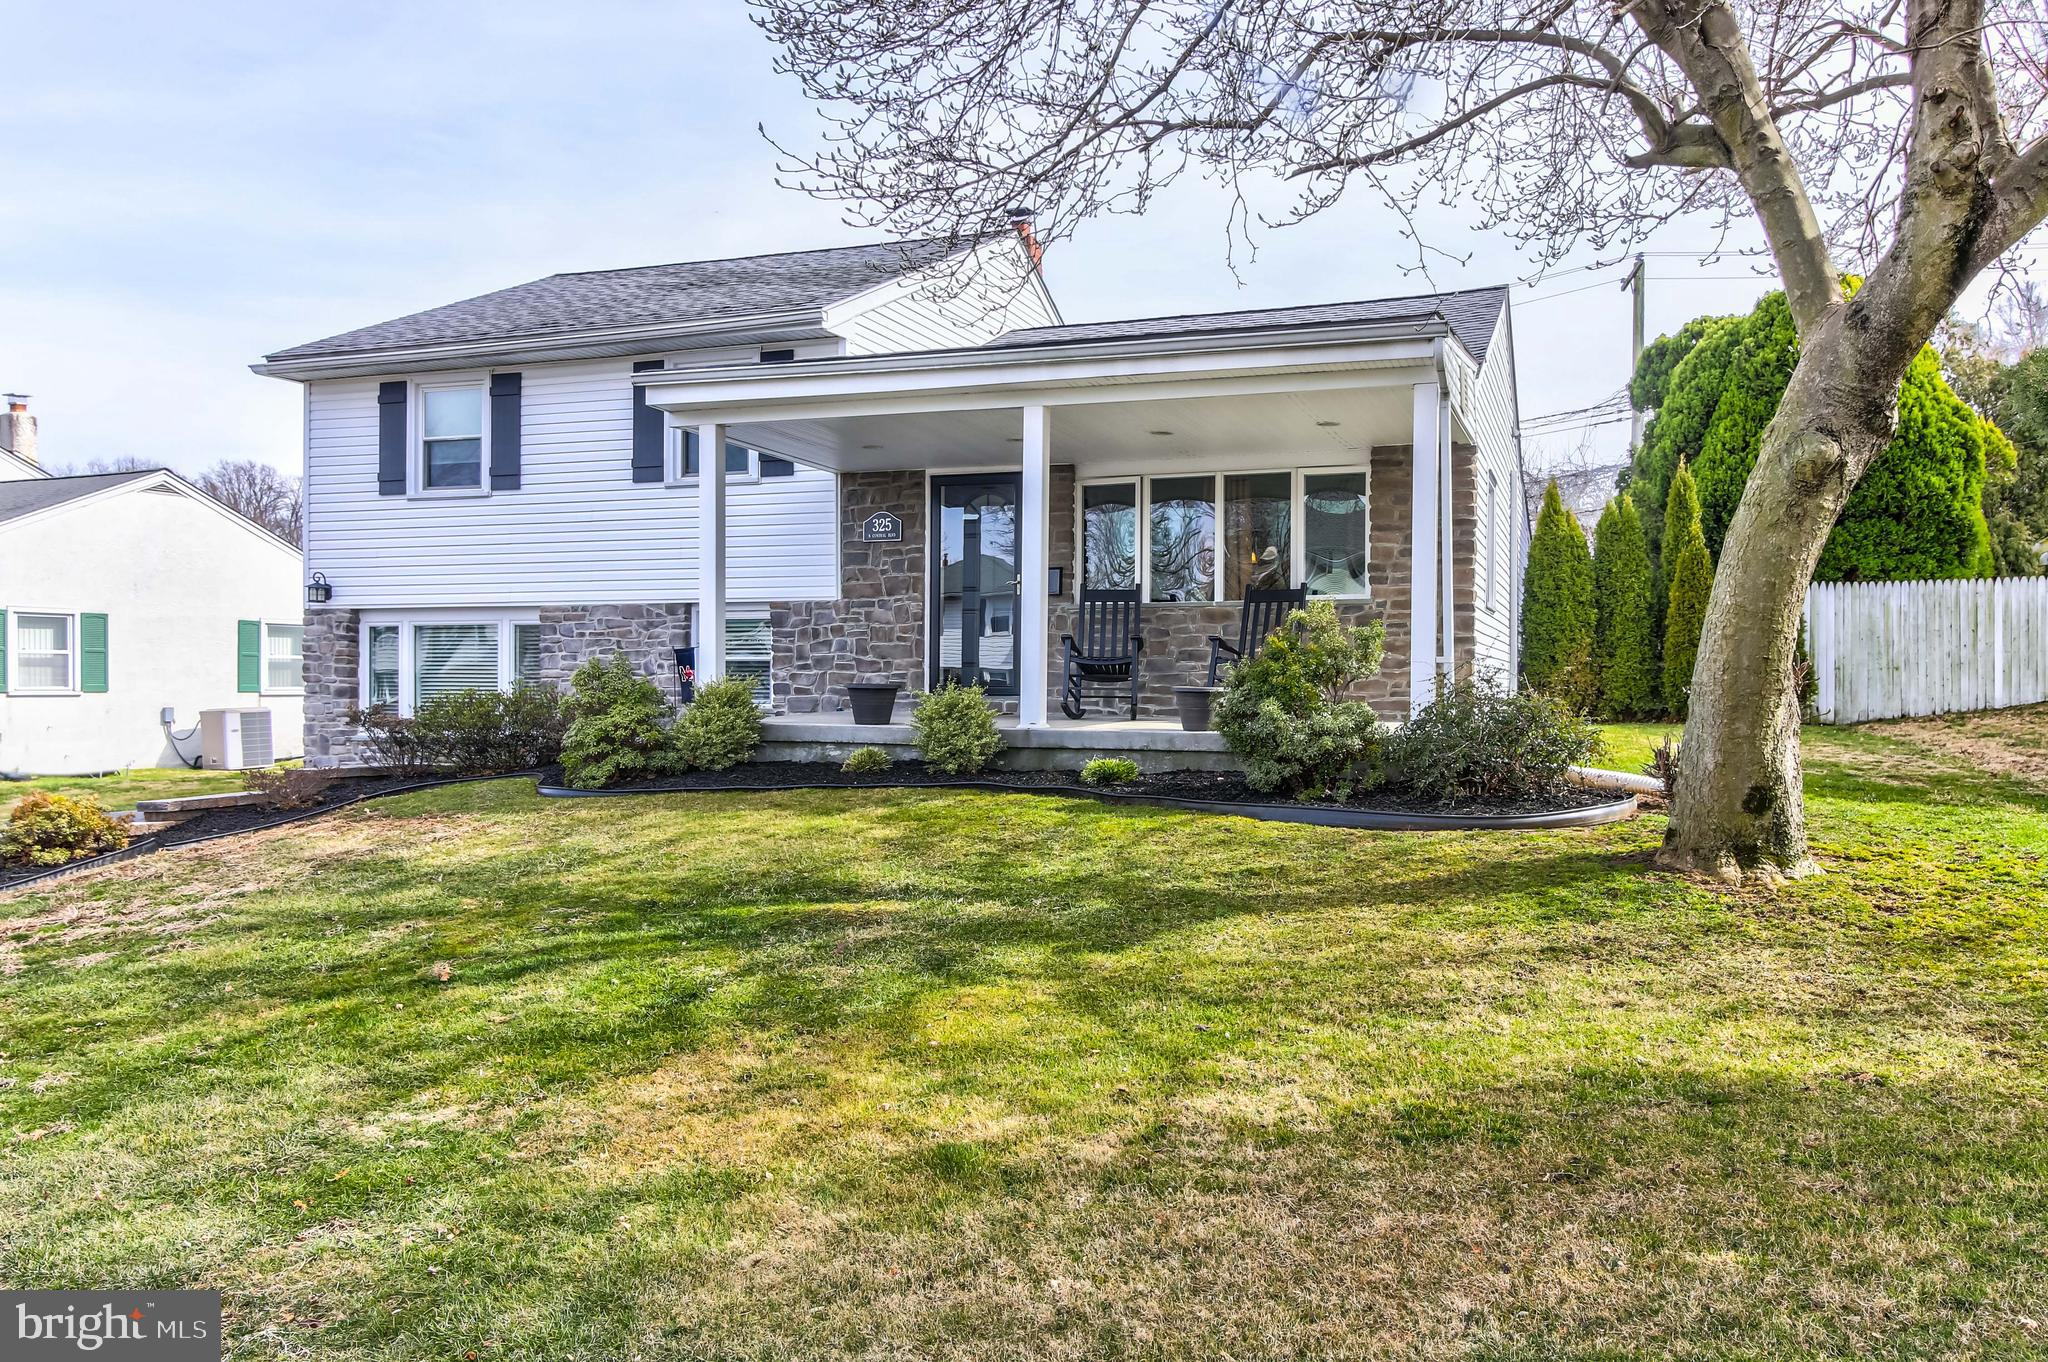 325 N CENTRAL BOULEVARD, BROOMALL, PA 19008